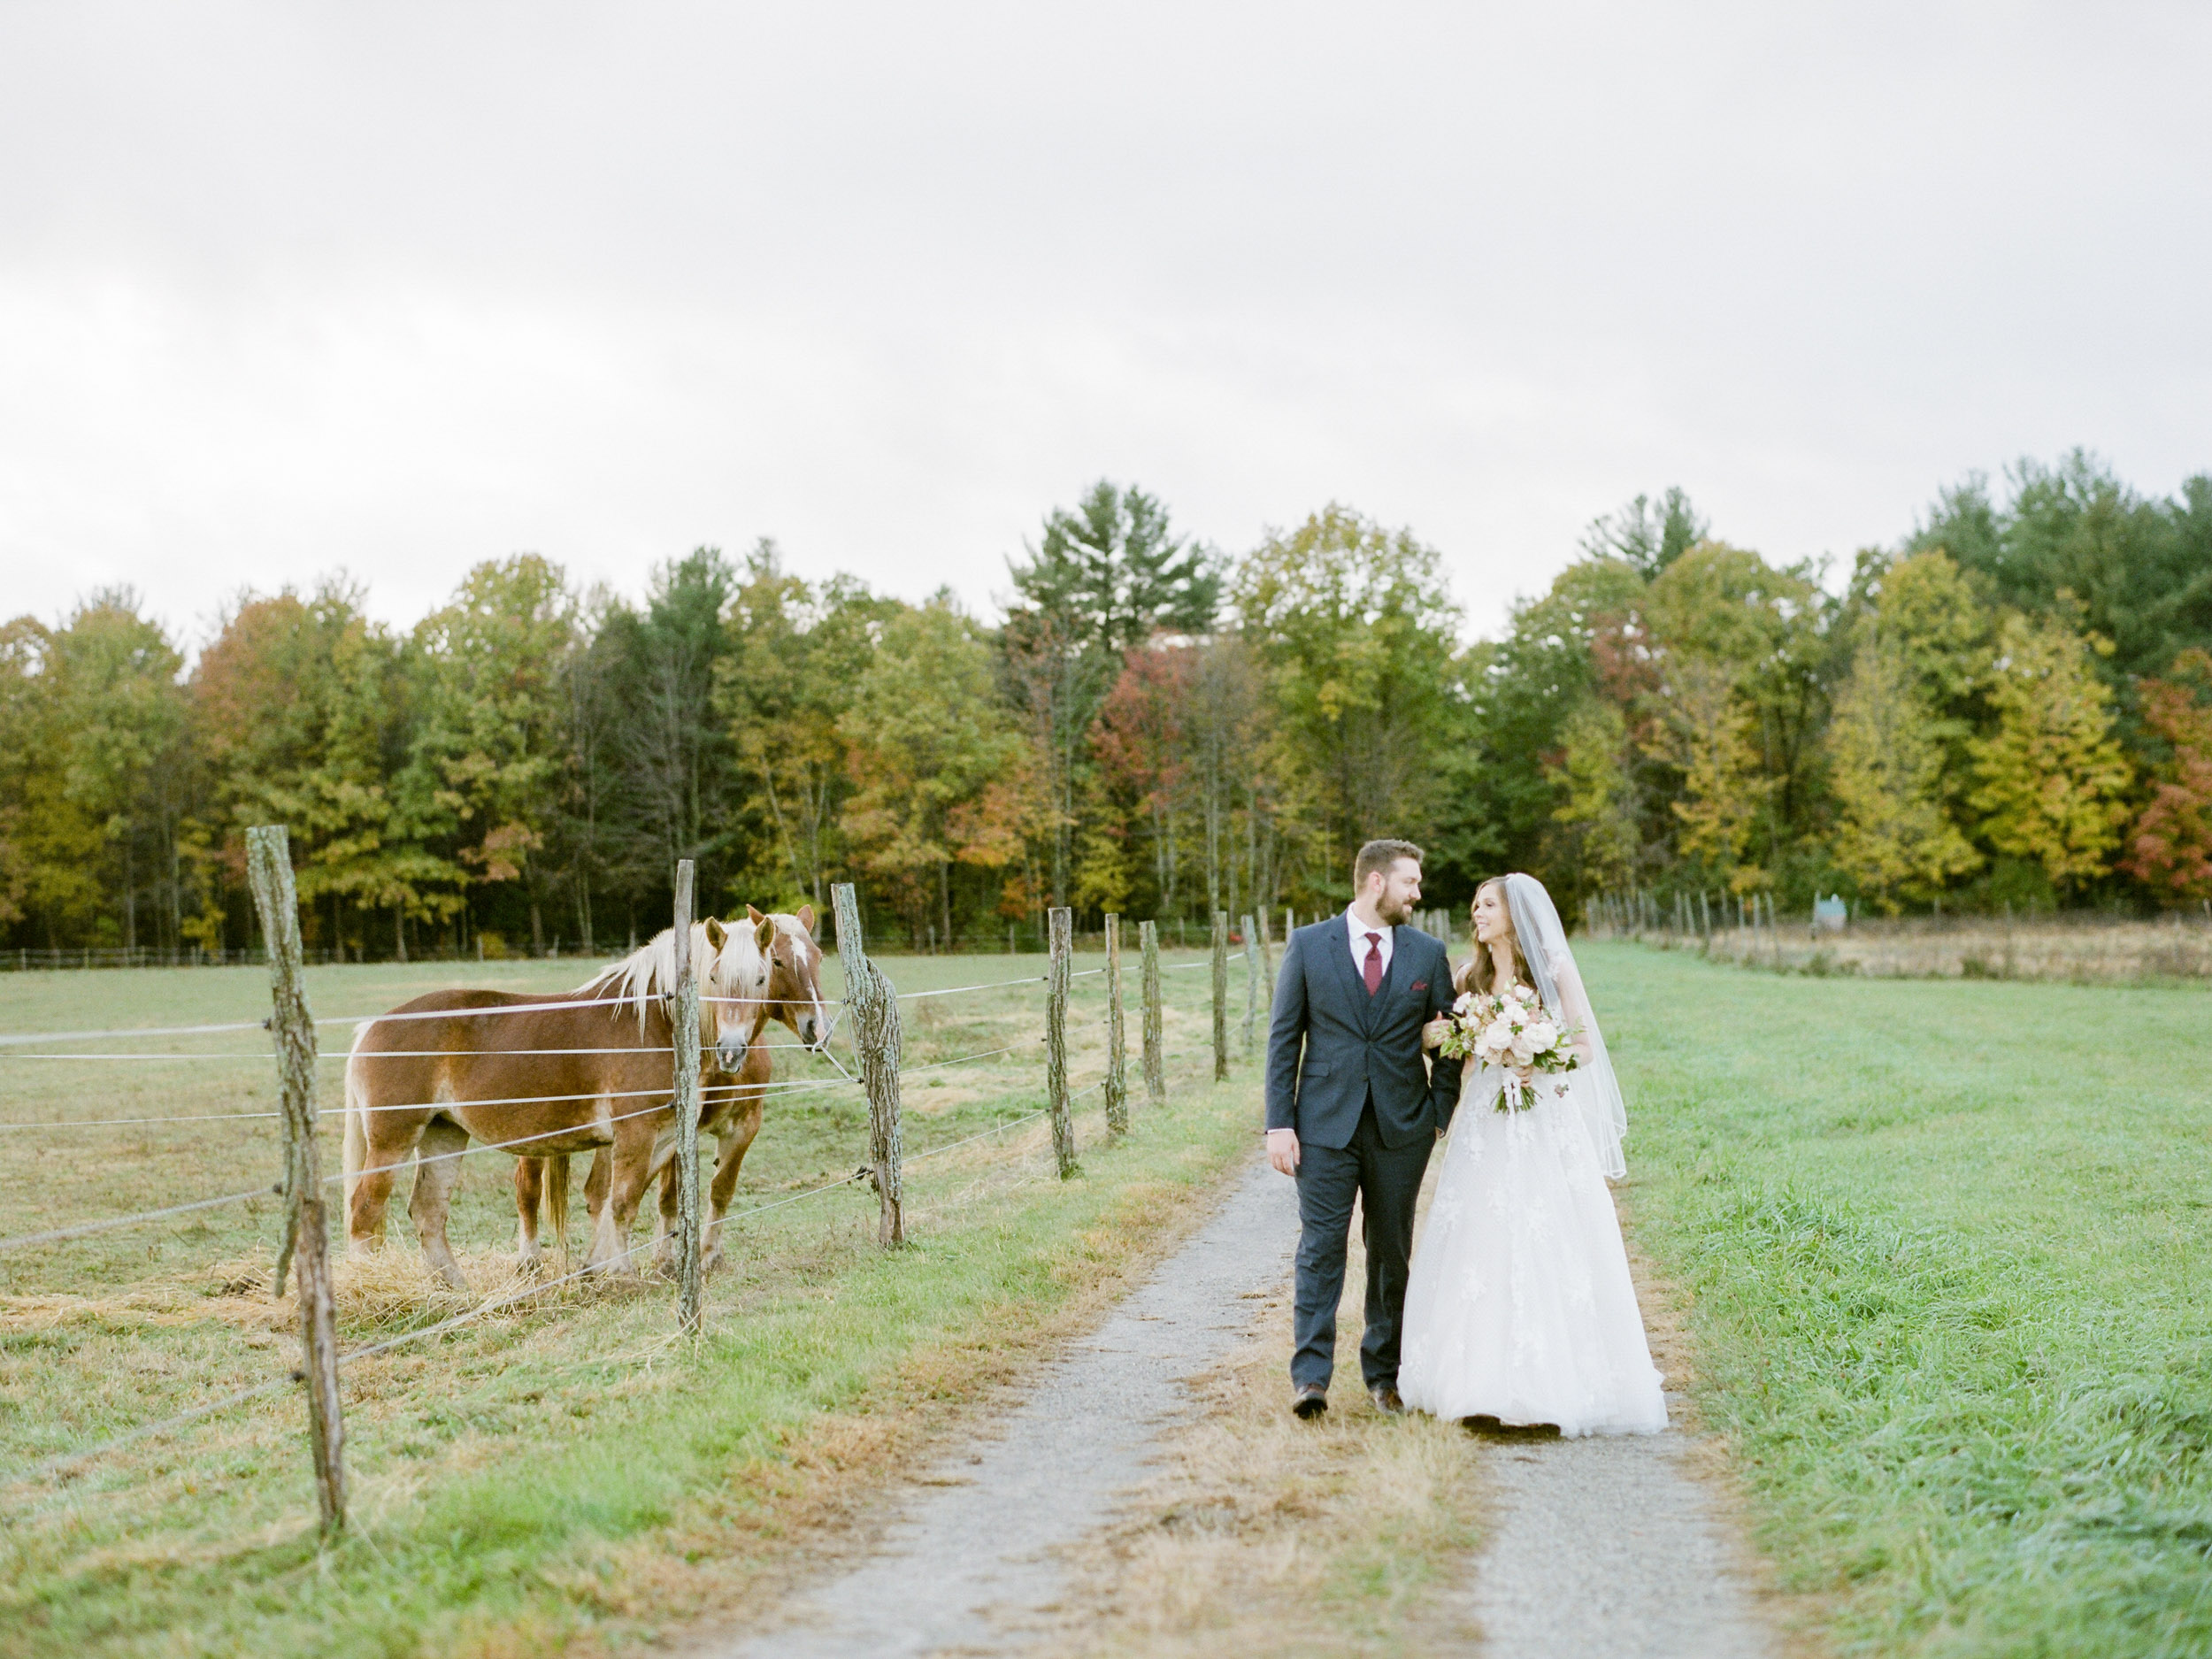 Elopement Photographers in Western MA